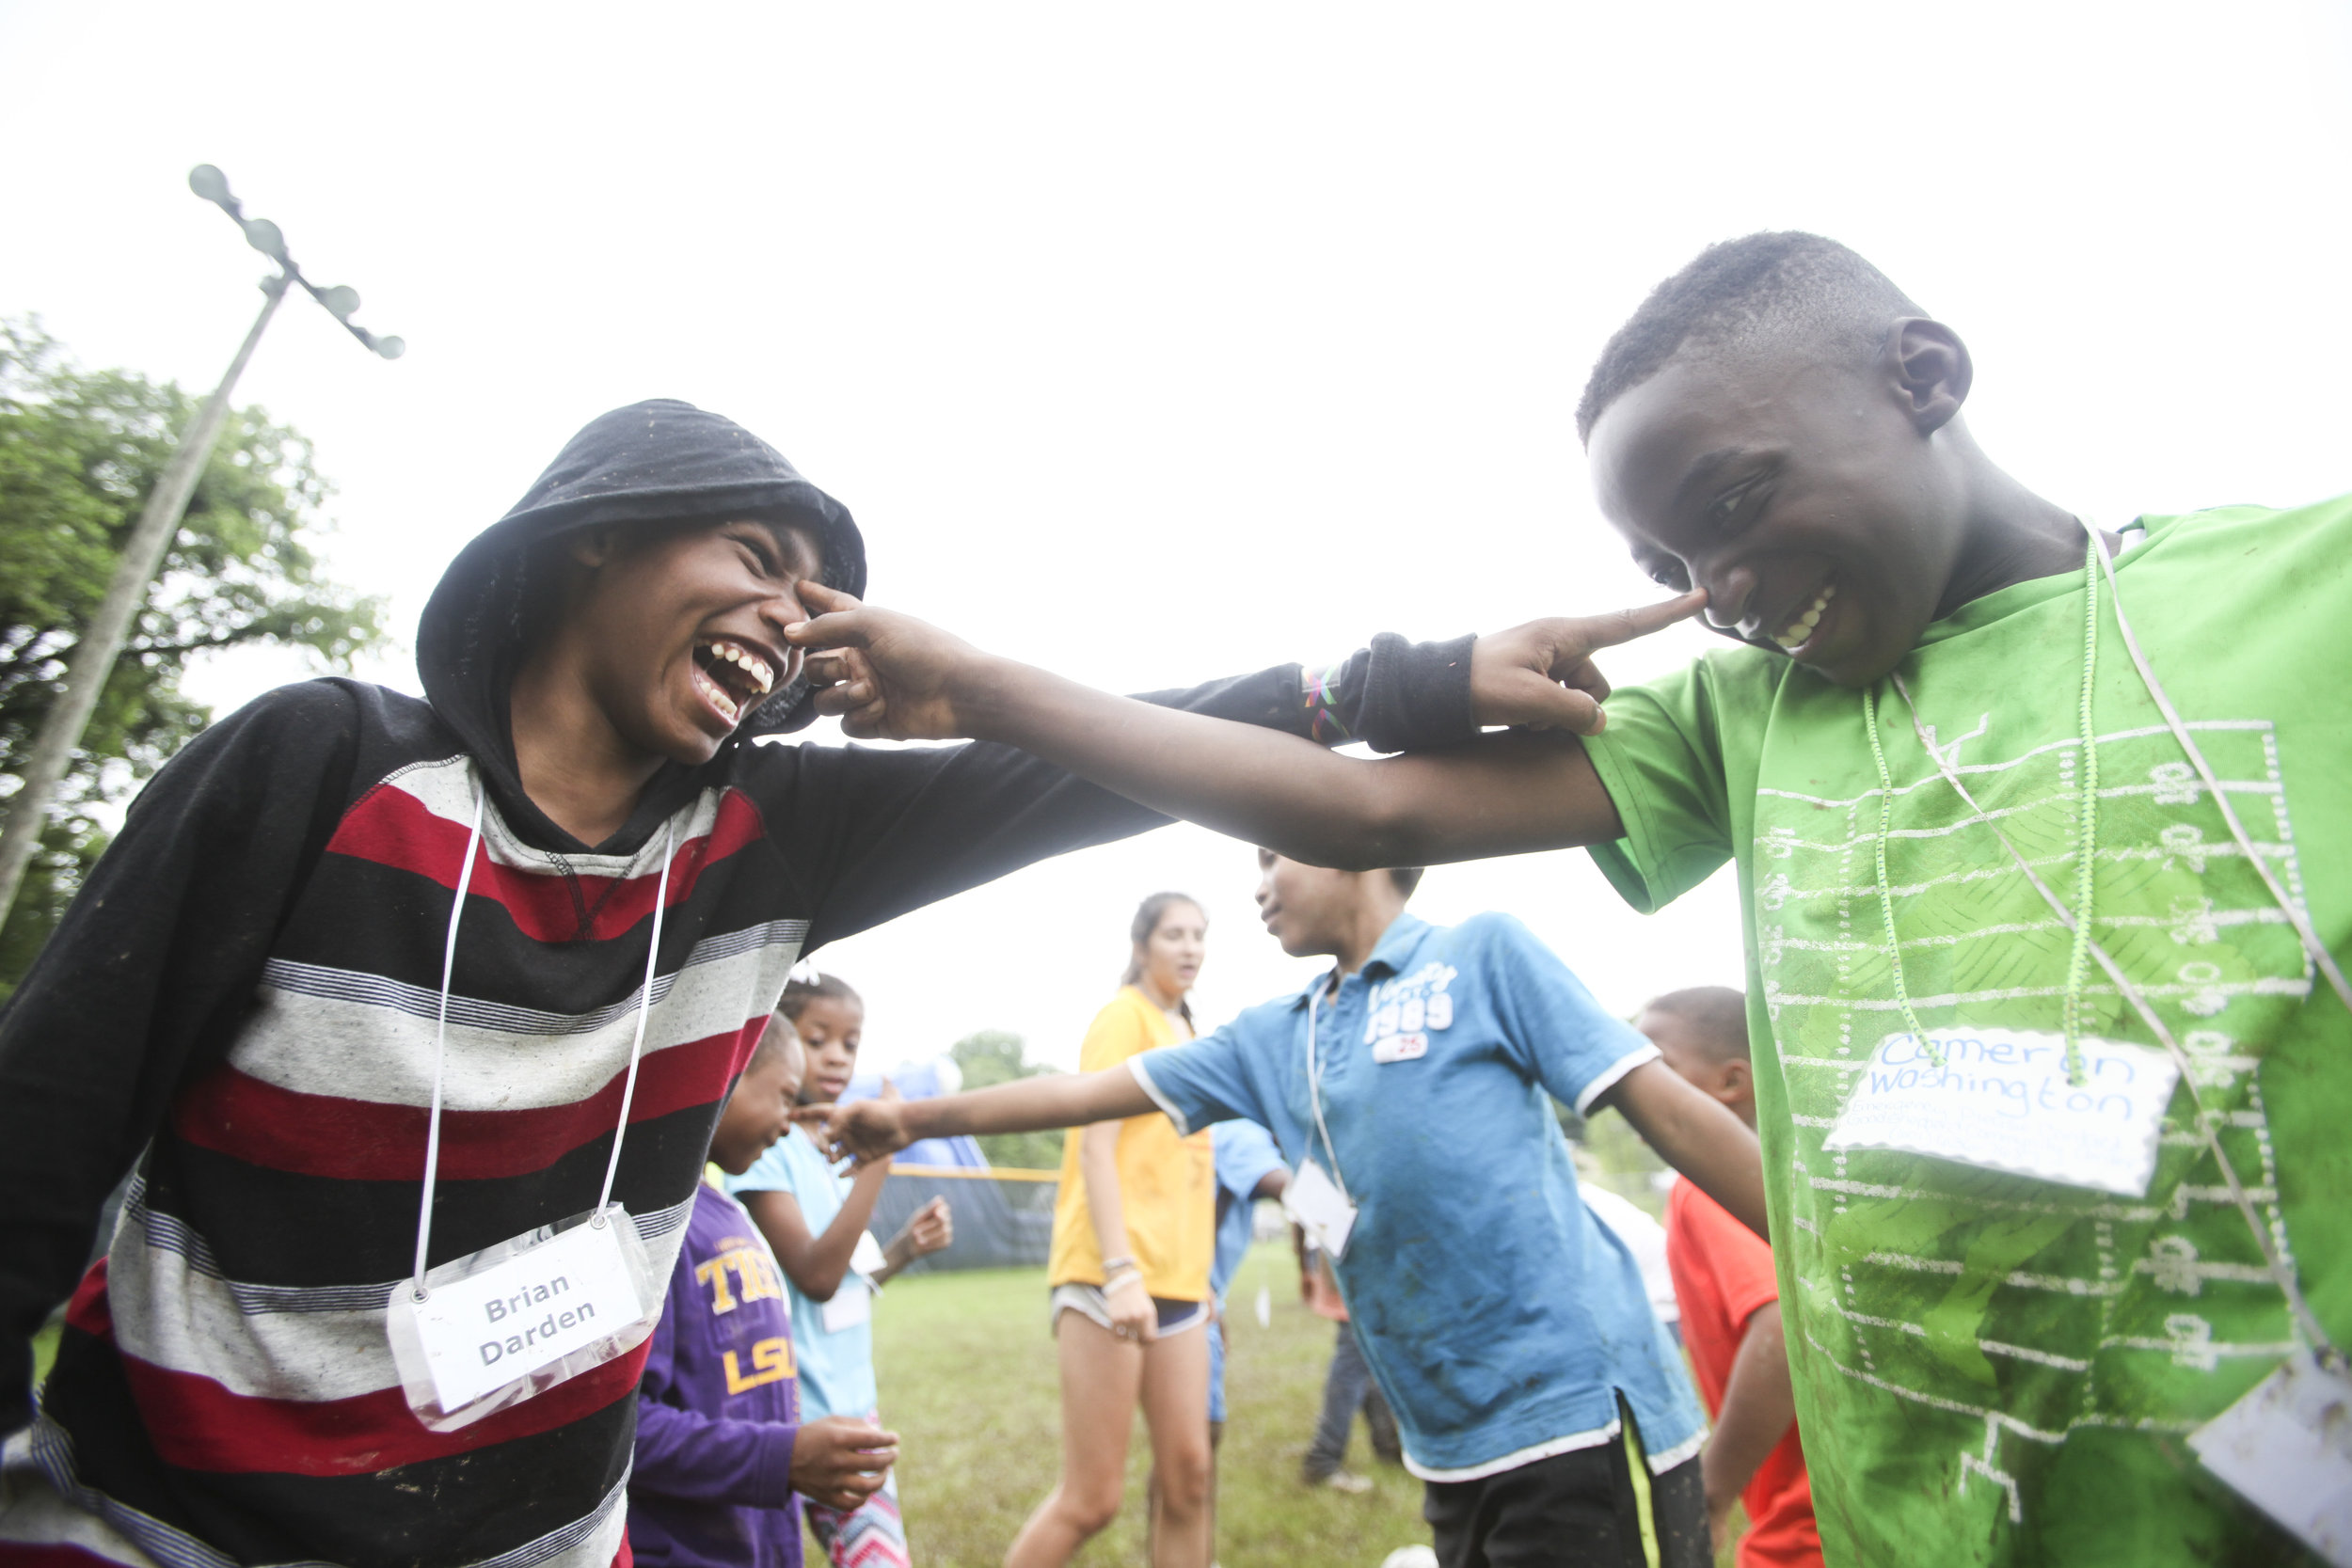 Brian Darden and Cameron Washington laugh while having to touch each other's nose during a concentration drill during the Salvation Army's Kicks for Hope Soccer Camp and Vacation Bible School Friday. Kids participated in soccer camp in the mornings with soccer coaches and then moved to Vacation Bible School throughout the rest of the day. (Courtland Wells/The Vicksburg Post)